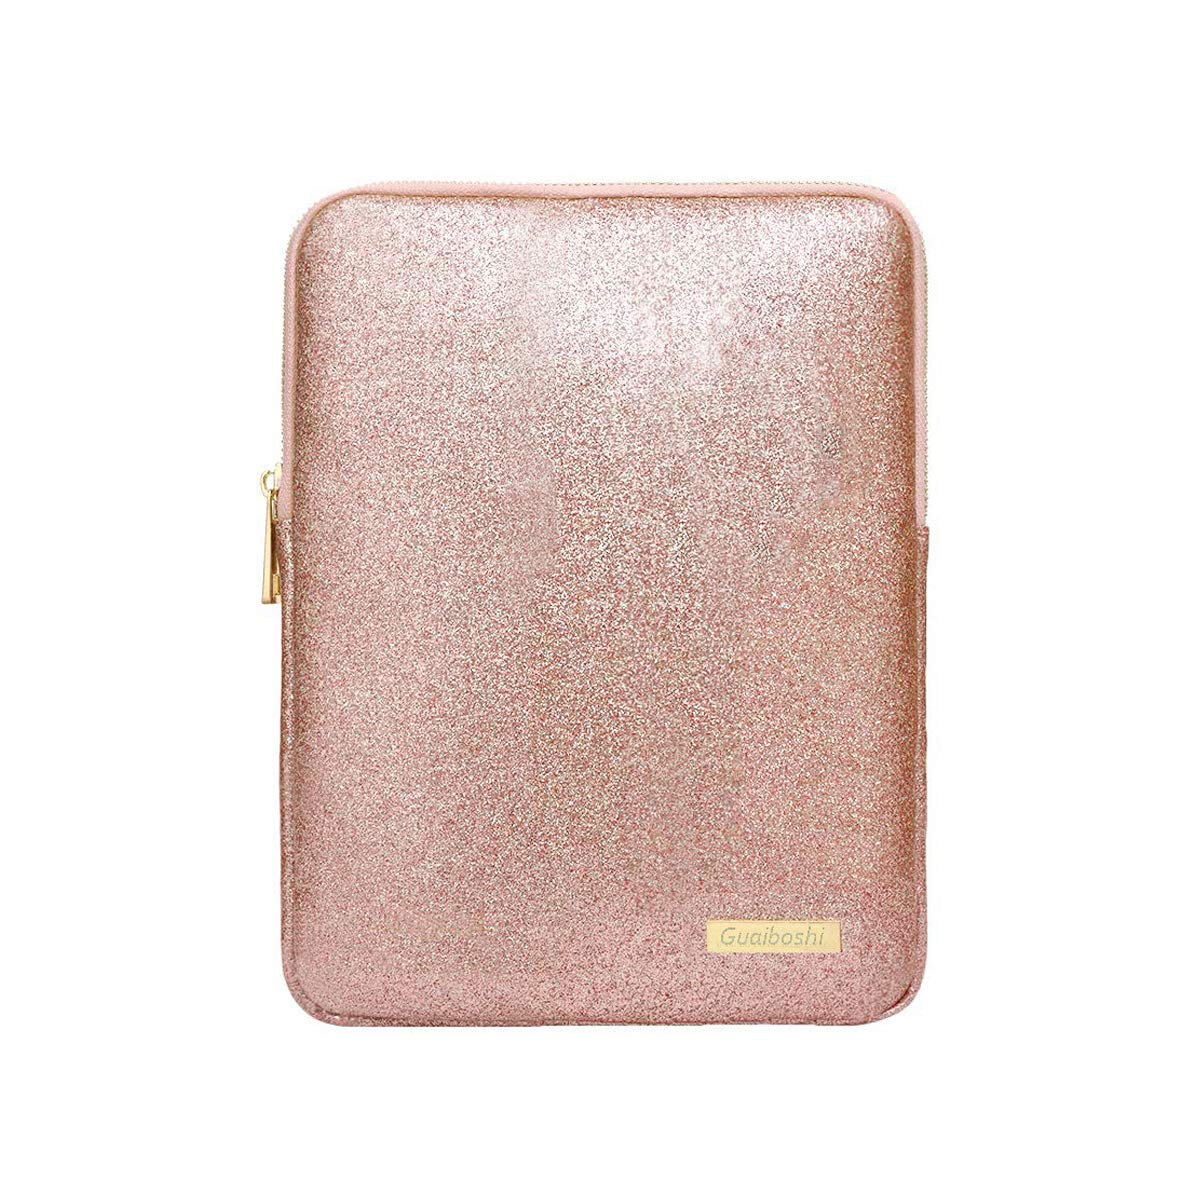 9-11Inch Tablet Sleeve Bag Case, Glitter PU Leather Pouch Cover Cases for iPad 10.5'' 2019, iPad Pro 11 2018, iPad 9.7, Samsung Galaxy Tab, Surface Go 10'' 2018-Rose Gold by Devmlicor